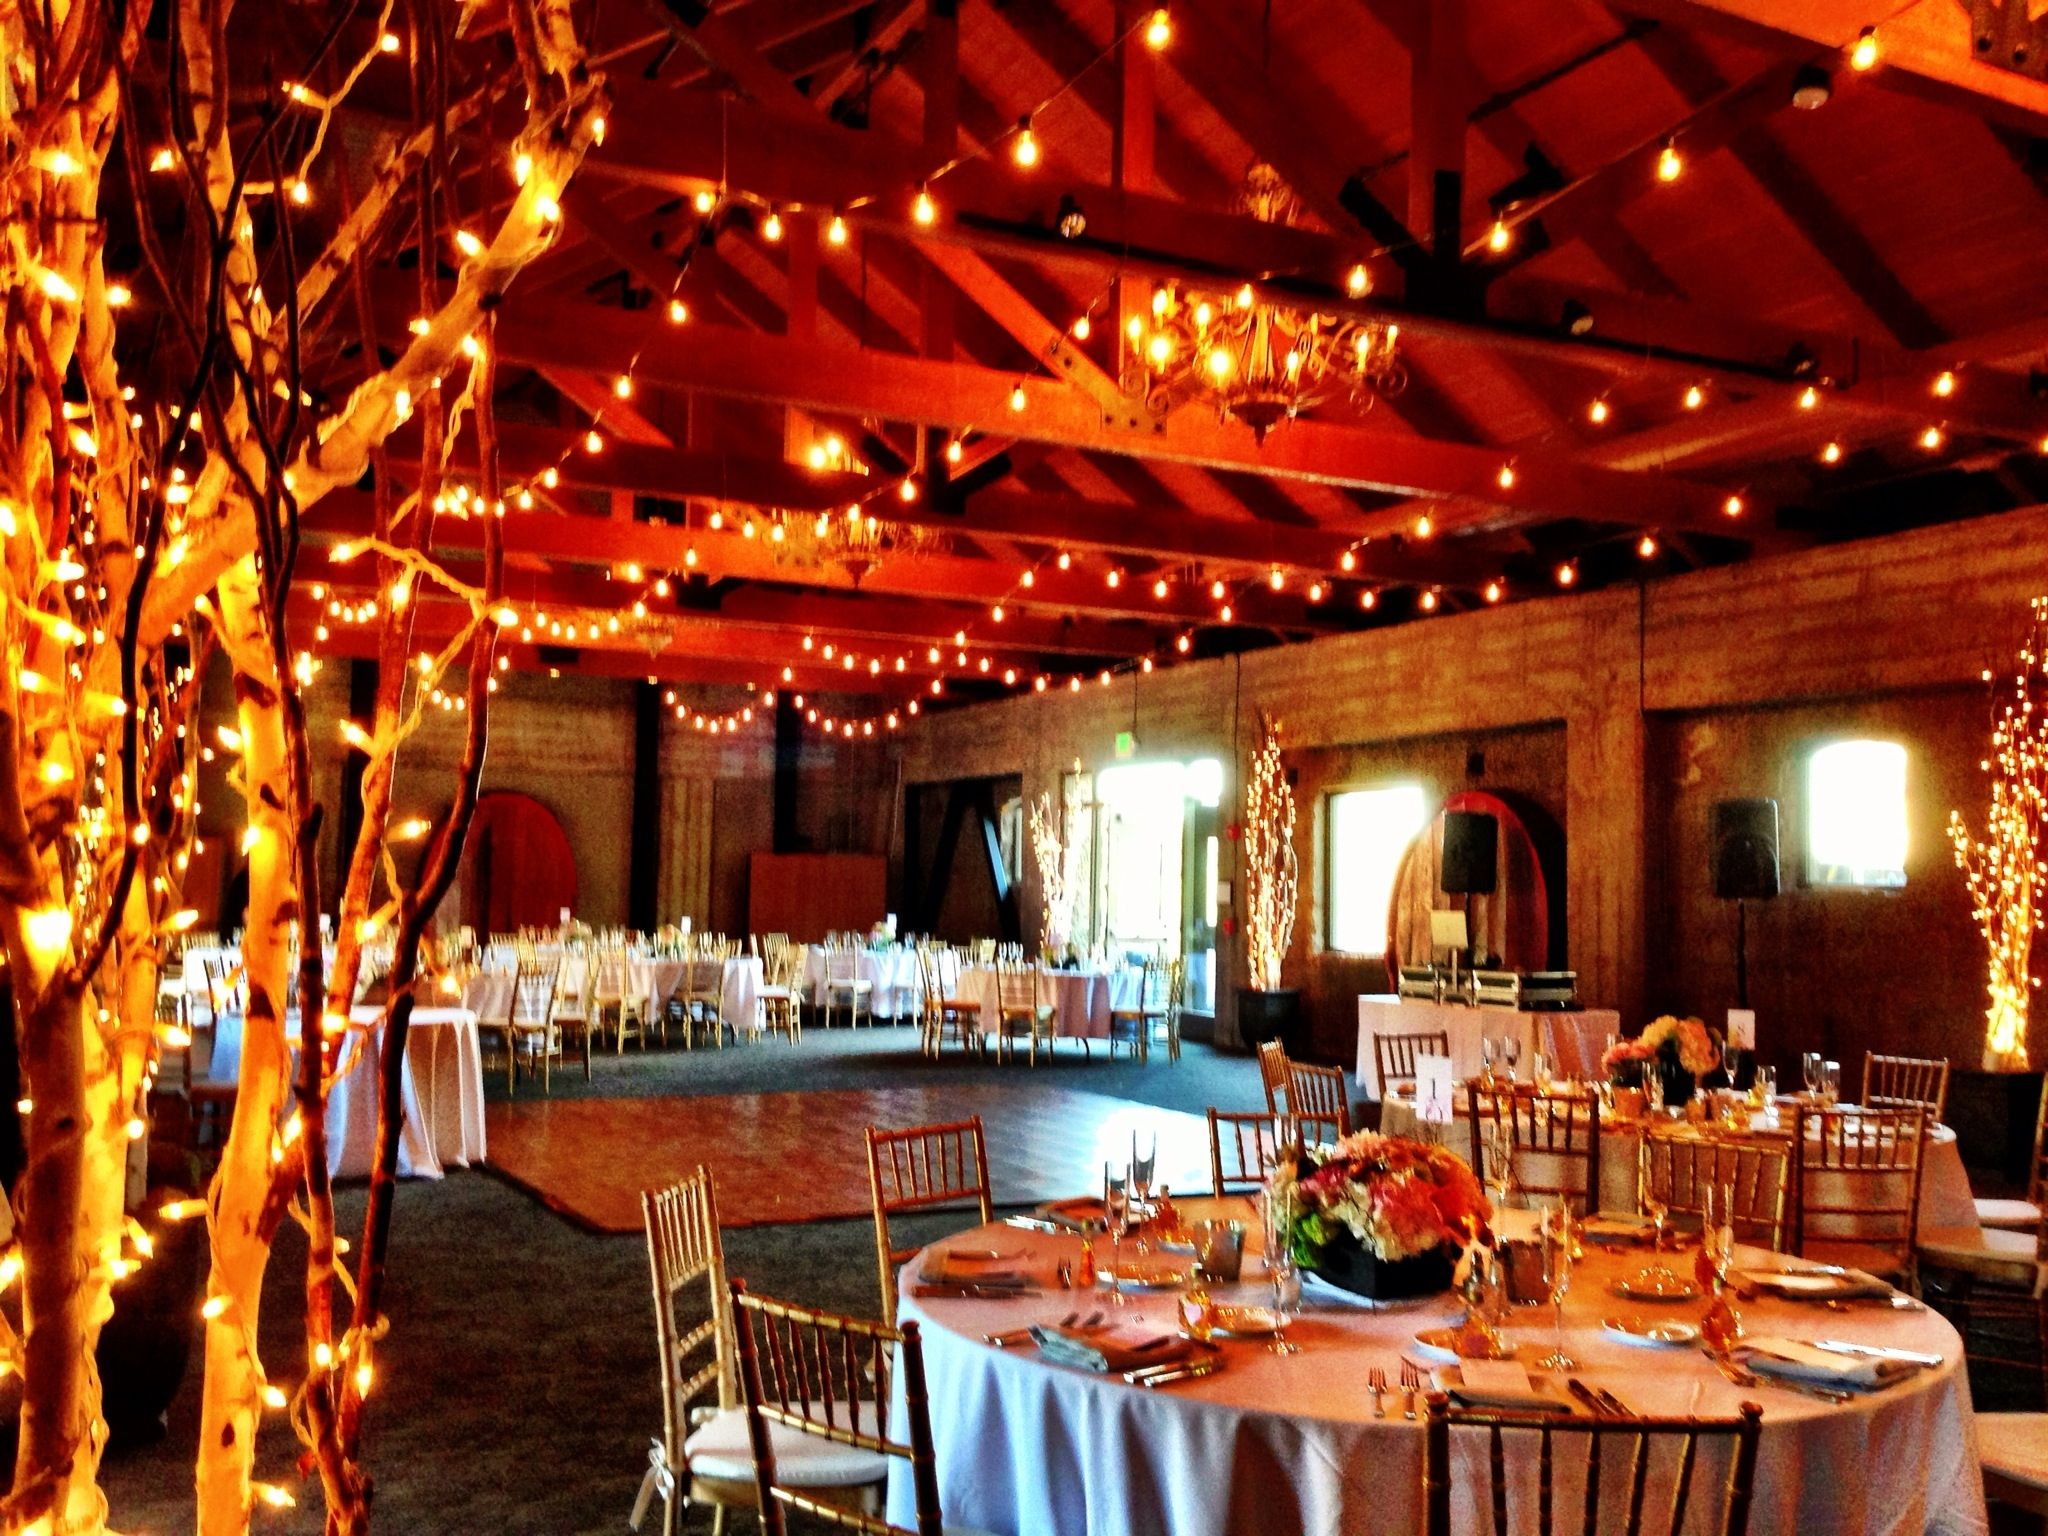 flickerthe mountain winery weddings saratoga yahoo image search results